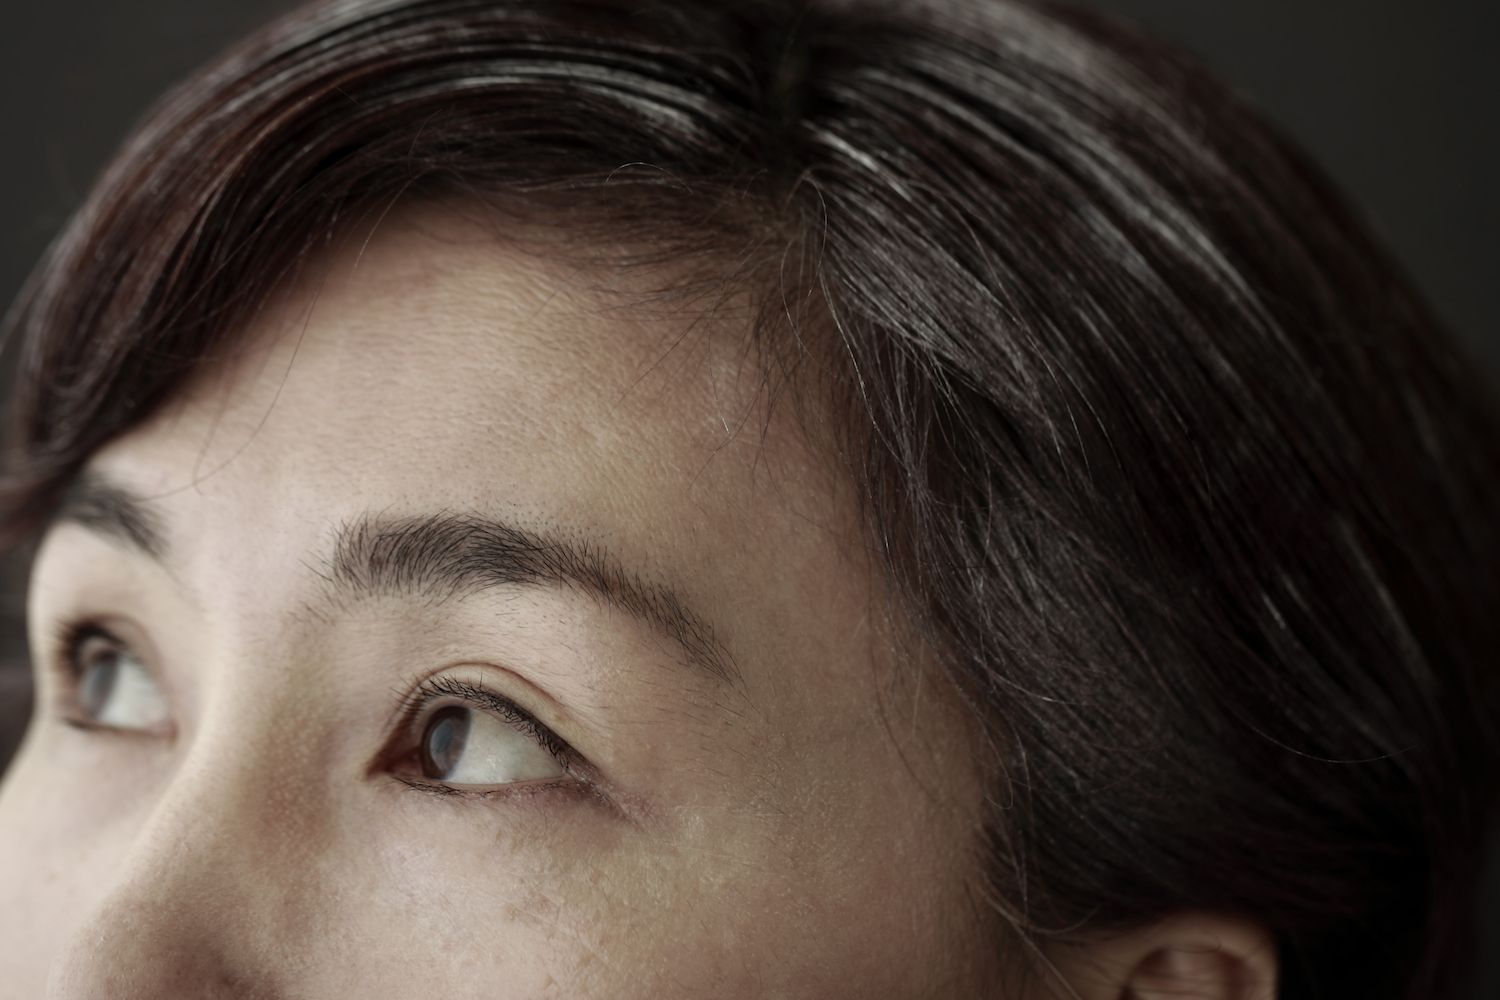 woman with a couple gray hairs